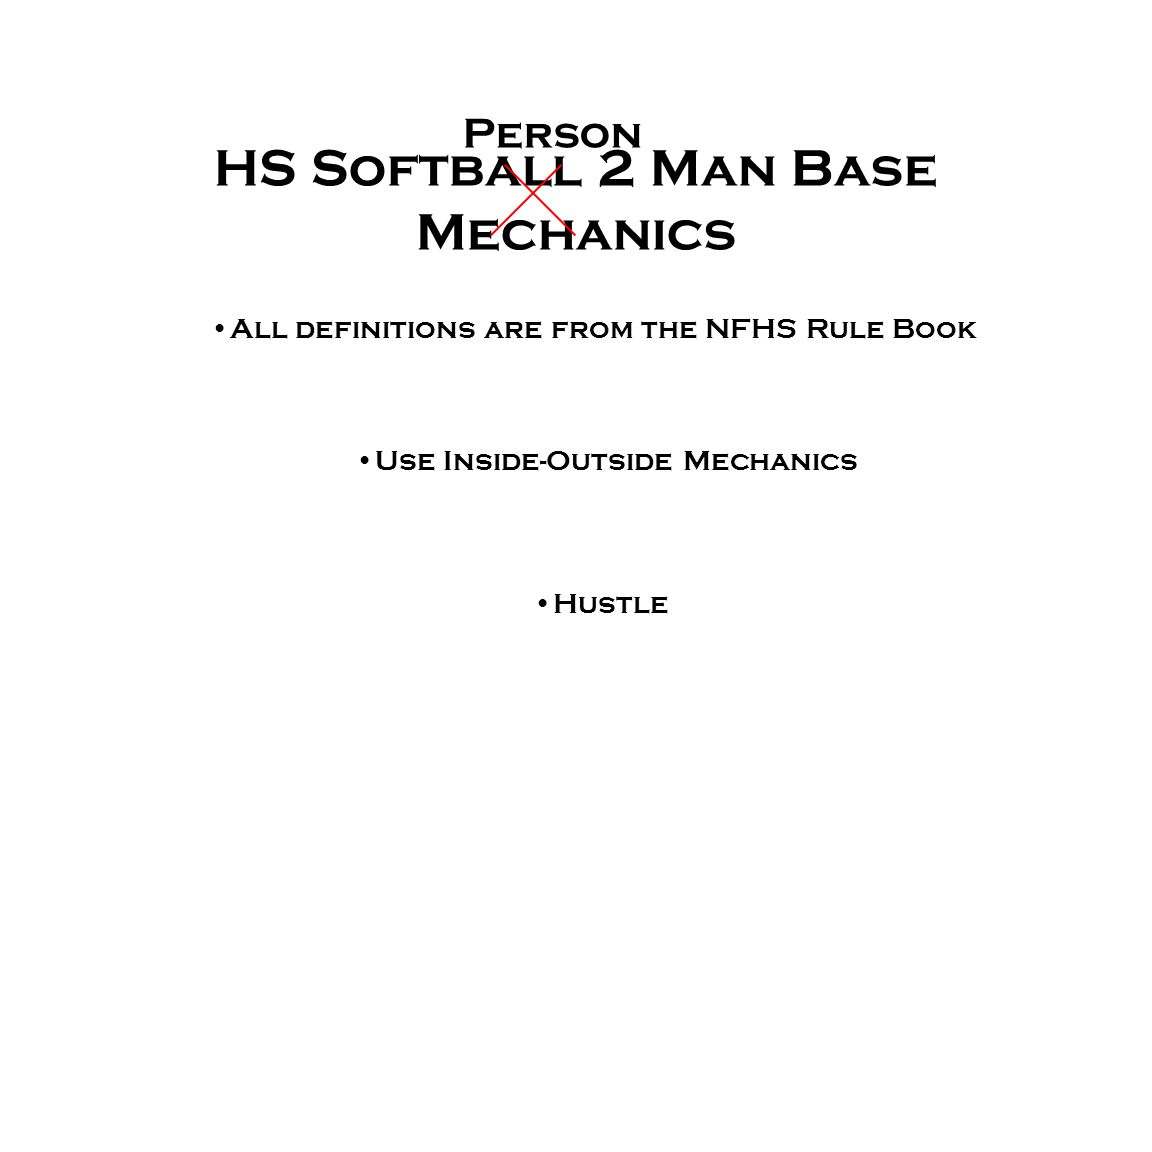 HS Softball 2 Man Base Mechanics All definitions are from the NFHS Rule Book Use Inside-Outside Mechanics Hustle Person